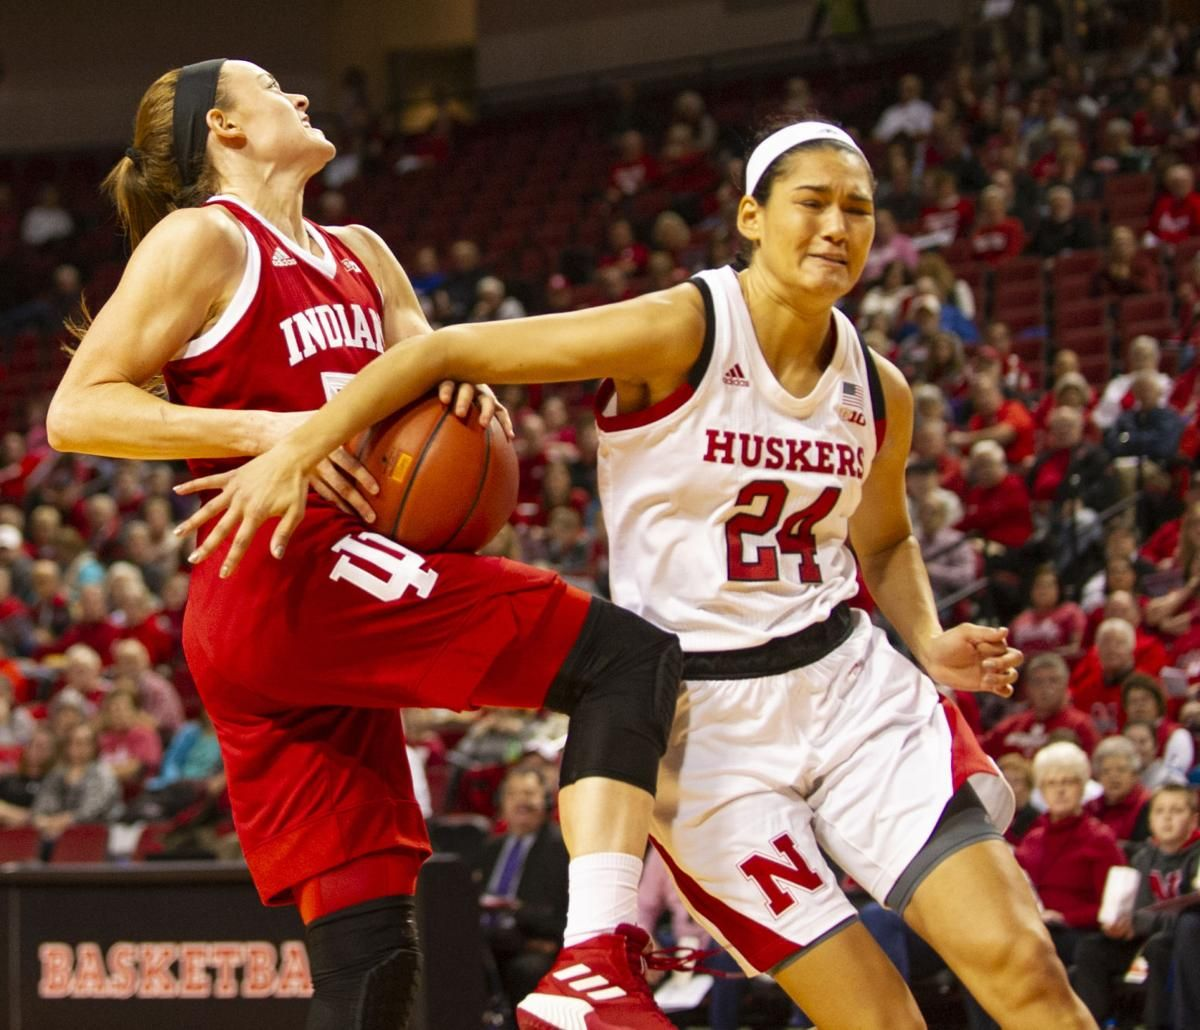 Hoosiers Make Key Late Game Shots To Edge Husker Women Latest Games Women Hoosiers